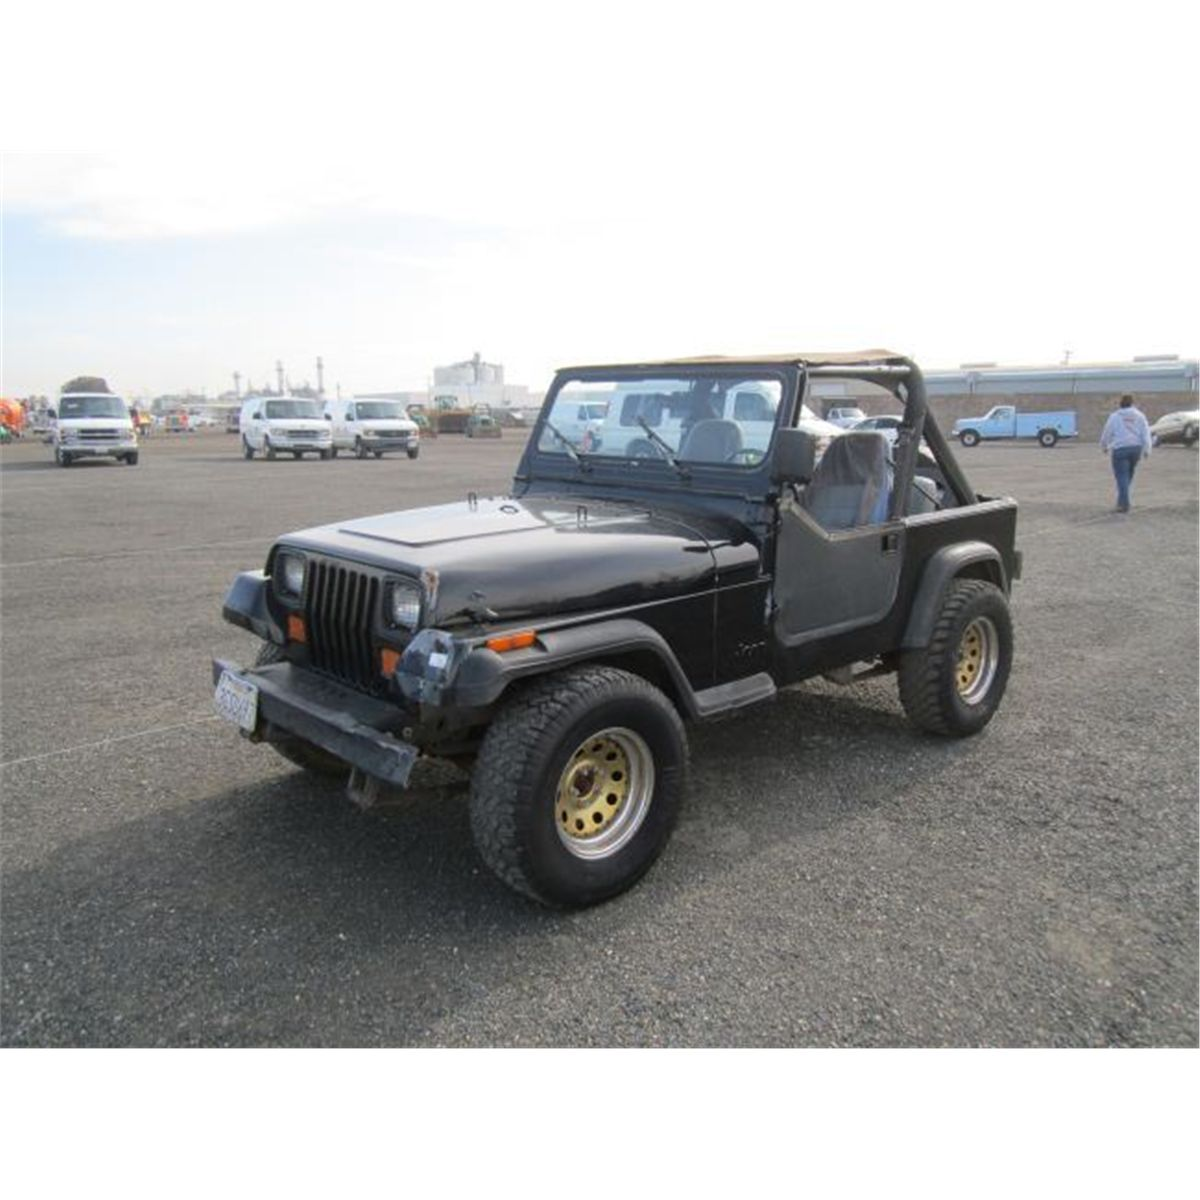 1990s jeep wrangler viewing gallery